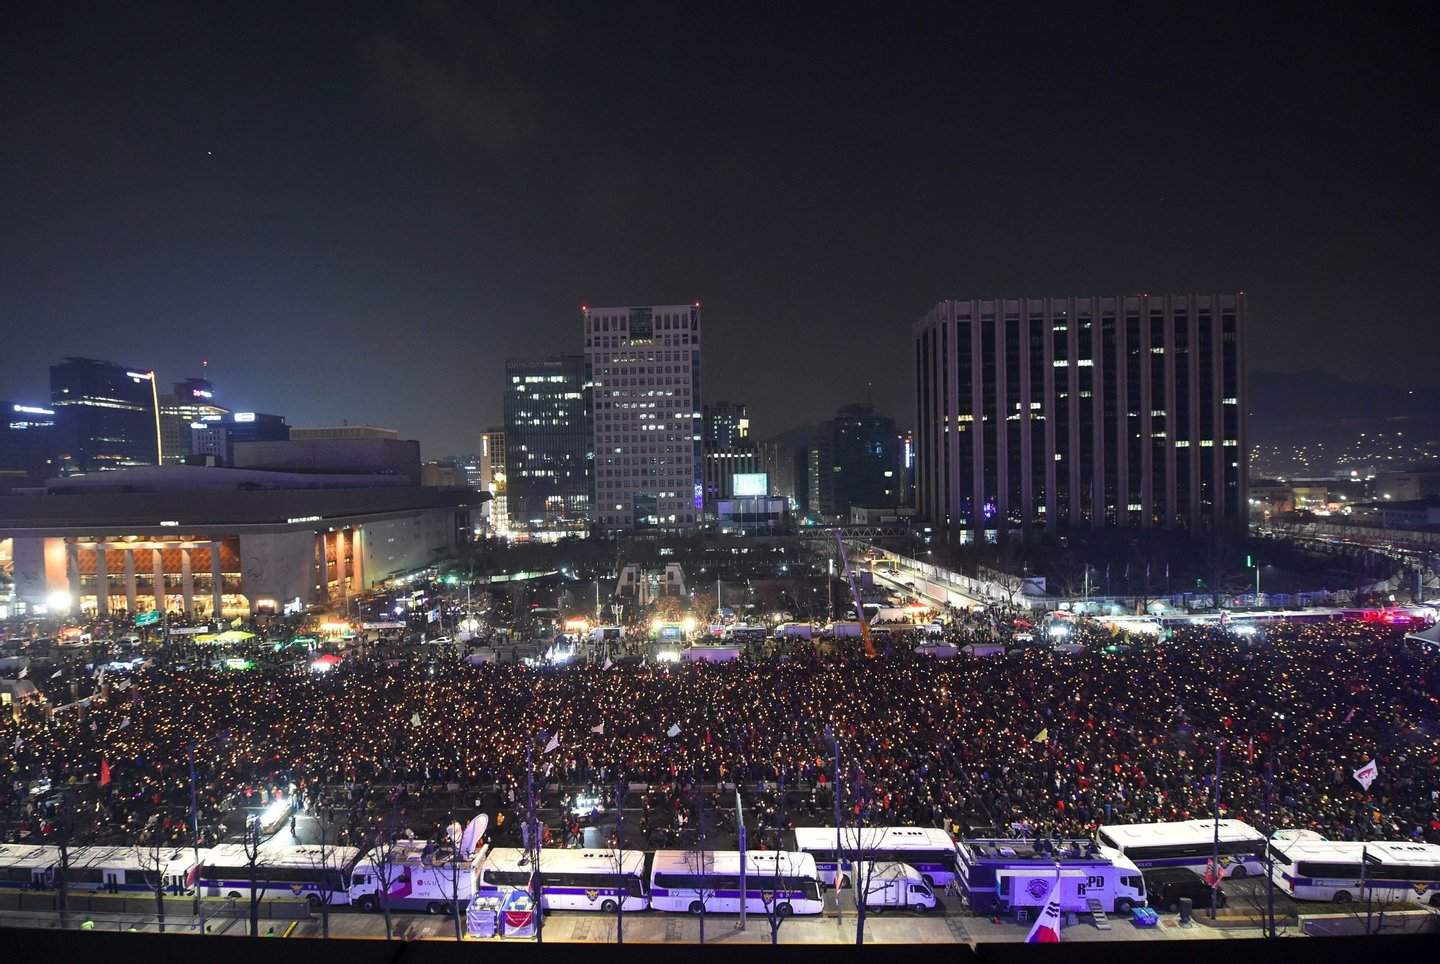 Protesters attend a candle-lit rally calling for South Korean President Park Geun-Hye's immediate departure from her office, in downtown Seoul on December 31, 2016. South Korea sees in the new year with a massive protest calling for an immediate arrest of impeached President Park Geun-Hye. / AFP / JUNG Yeon-Je (Photo credit should read JUNG YEON-JE/AFP/Getty Images)